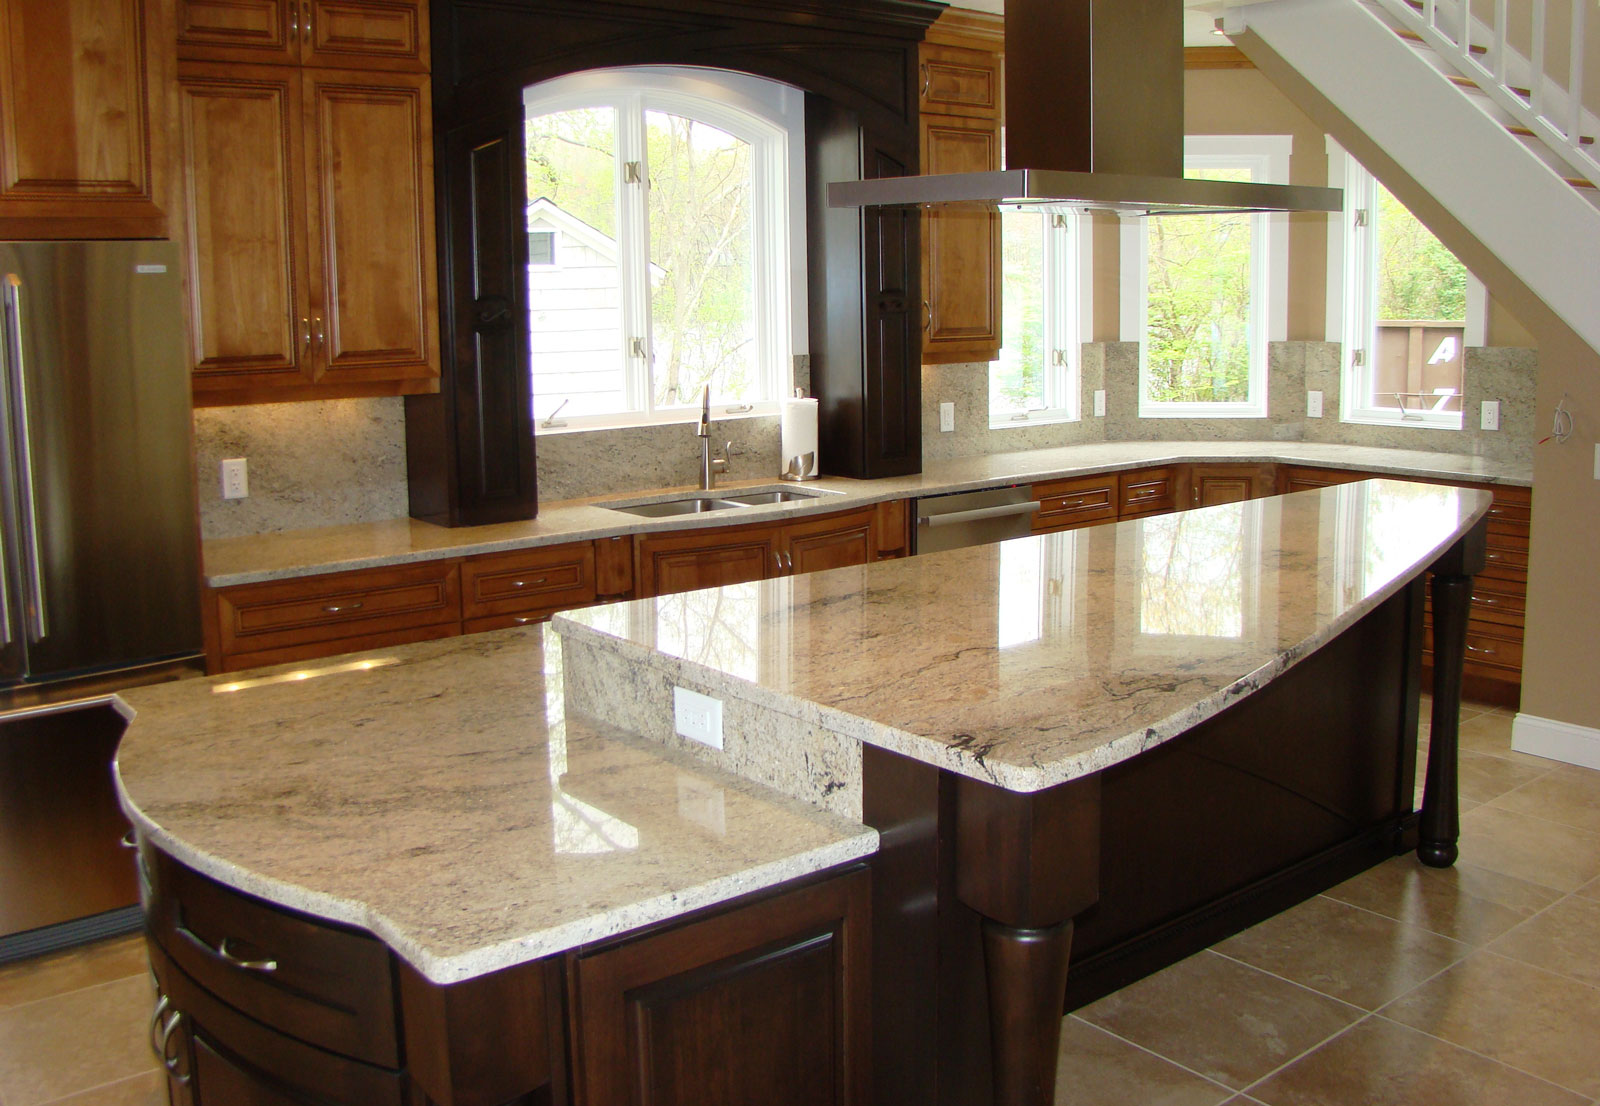 How To Choose Your Kitchen Countertop Materials - New ...